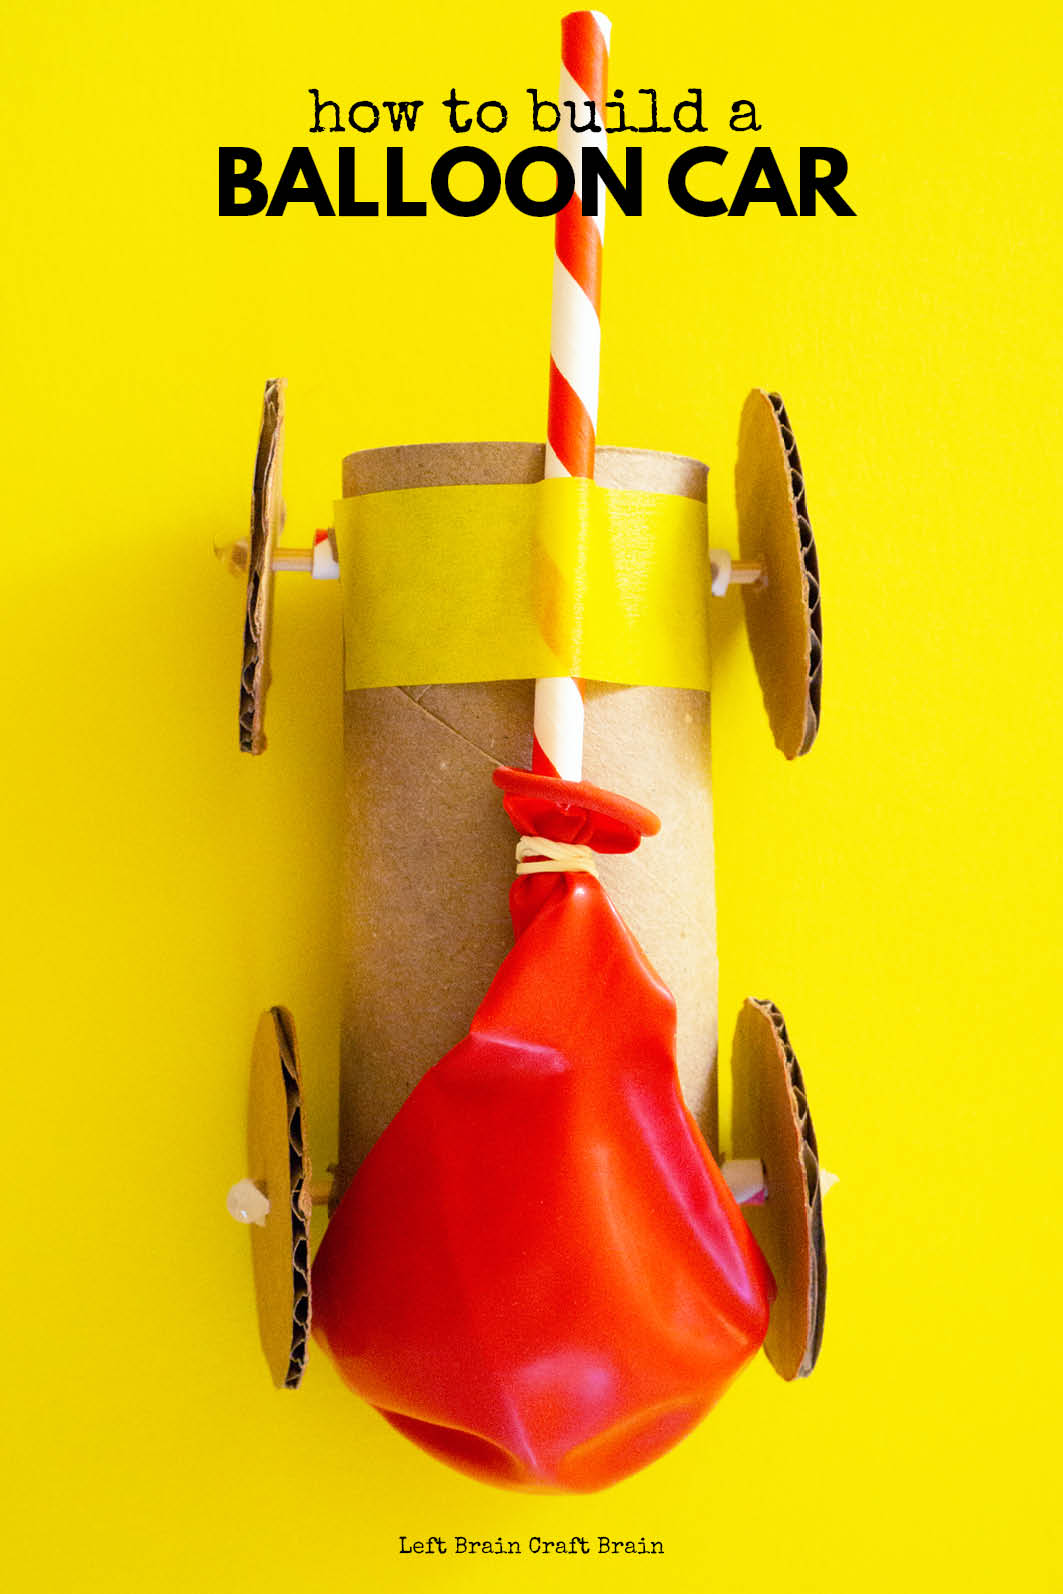 This toilet paper roll balloon car is a fun STEM challenge using recyclables! It's a perfect budget-friendly engineering activity for the classroom, homeschool, and scouts. Kids will learn about simple machines and the science of forces and motion.